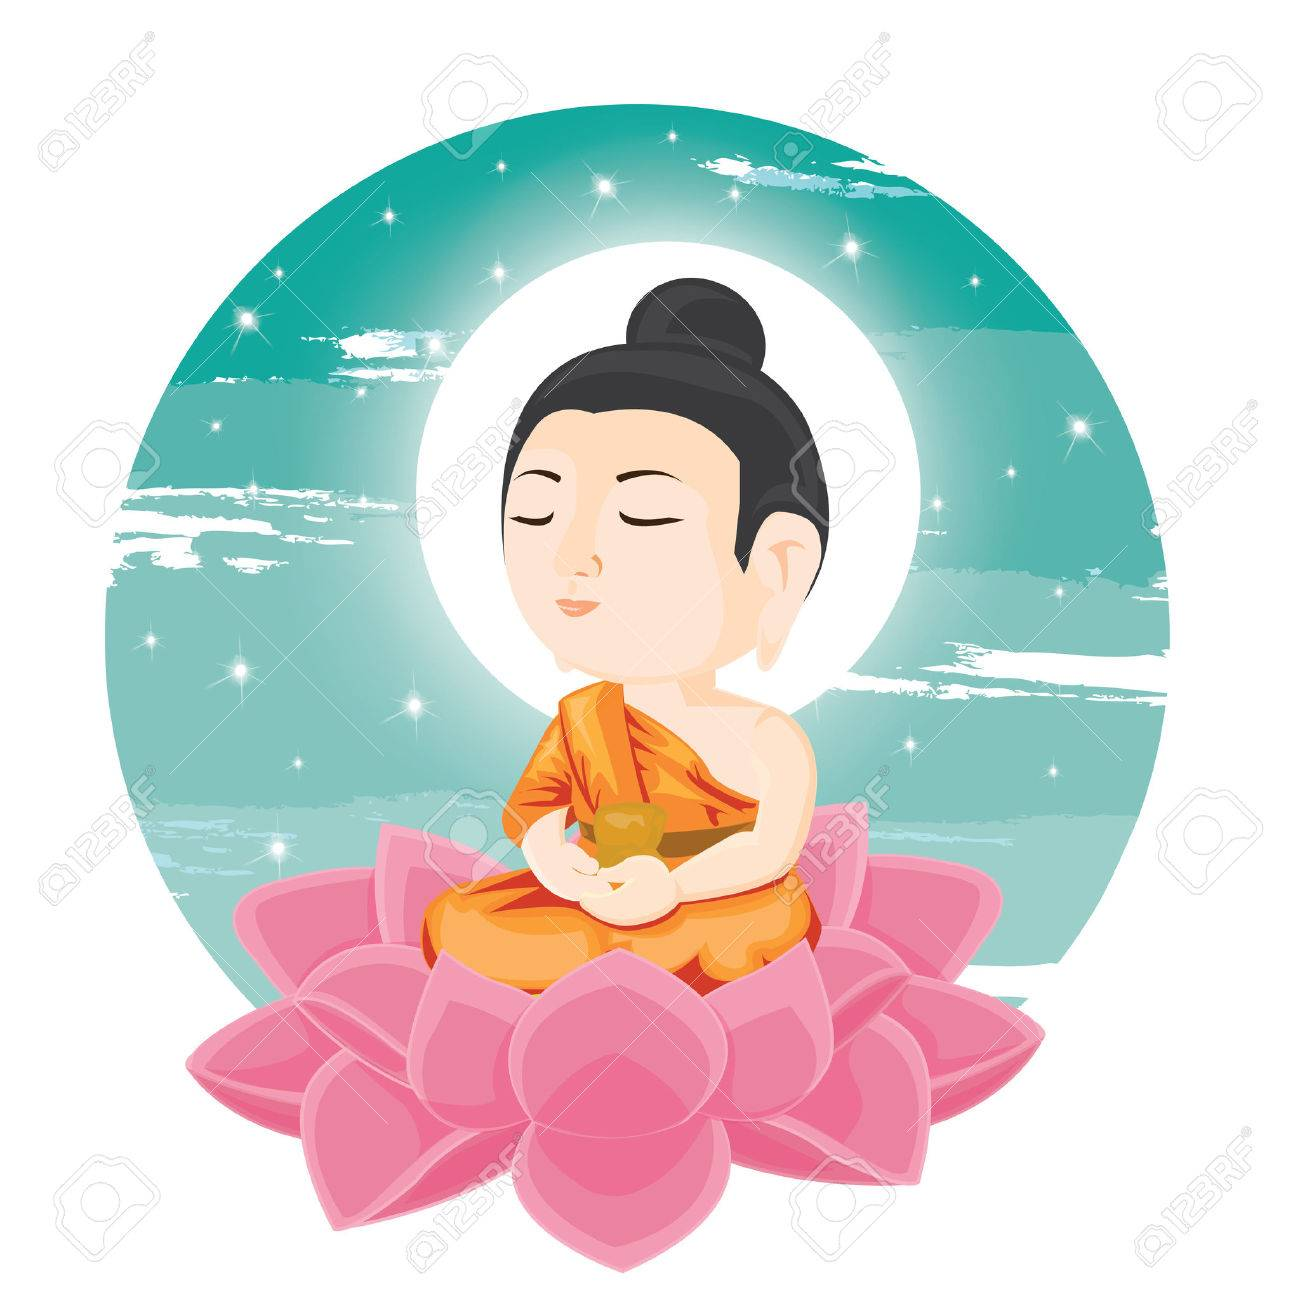 20747 Buddha Stock Illustrations Cliparts And Royalty Free Buddha